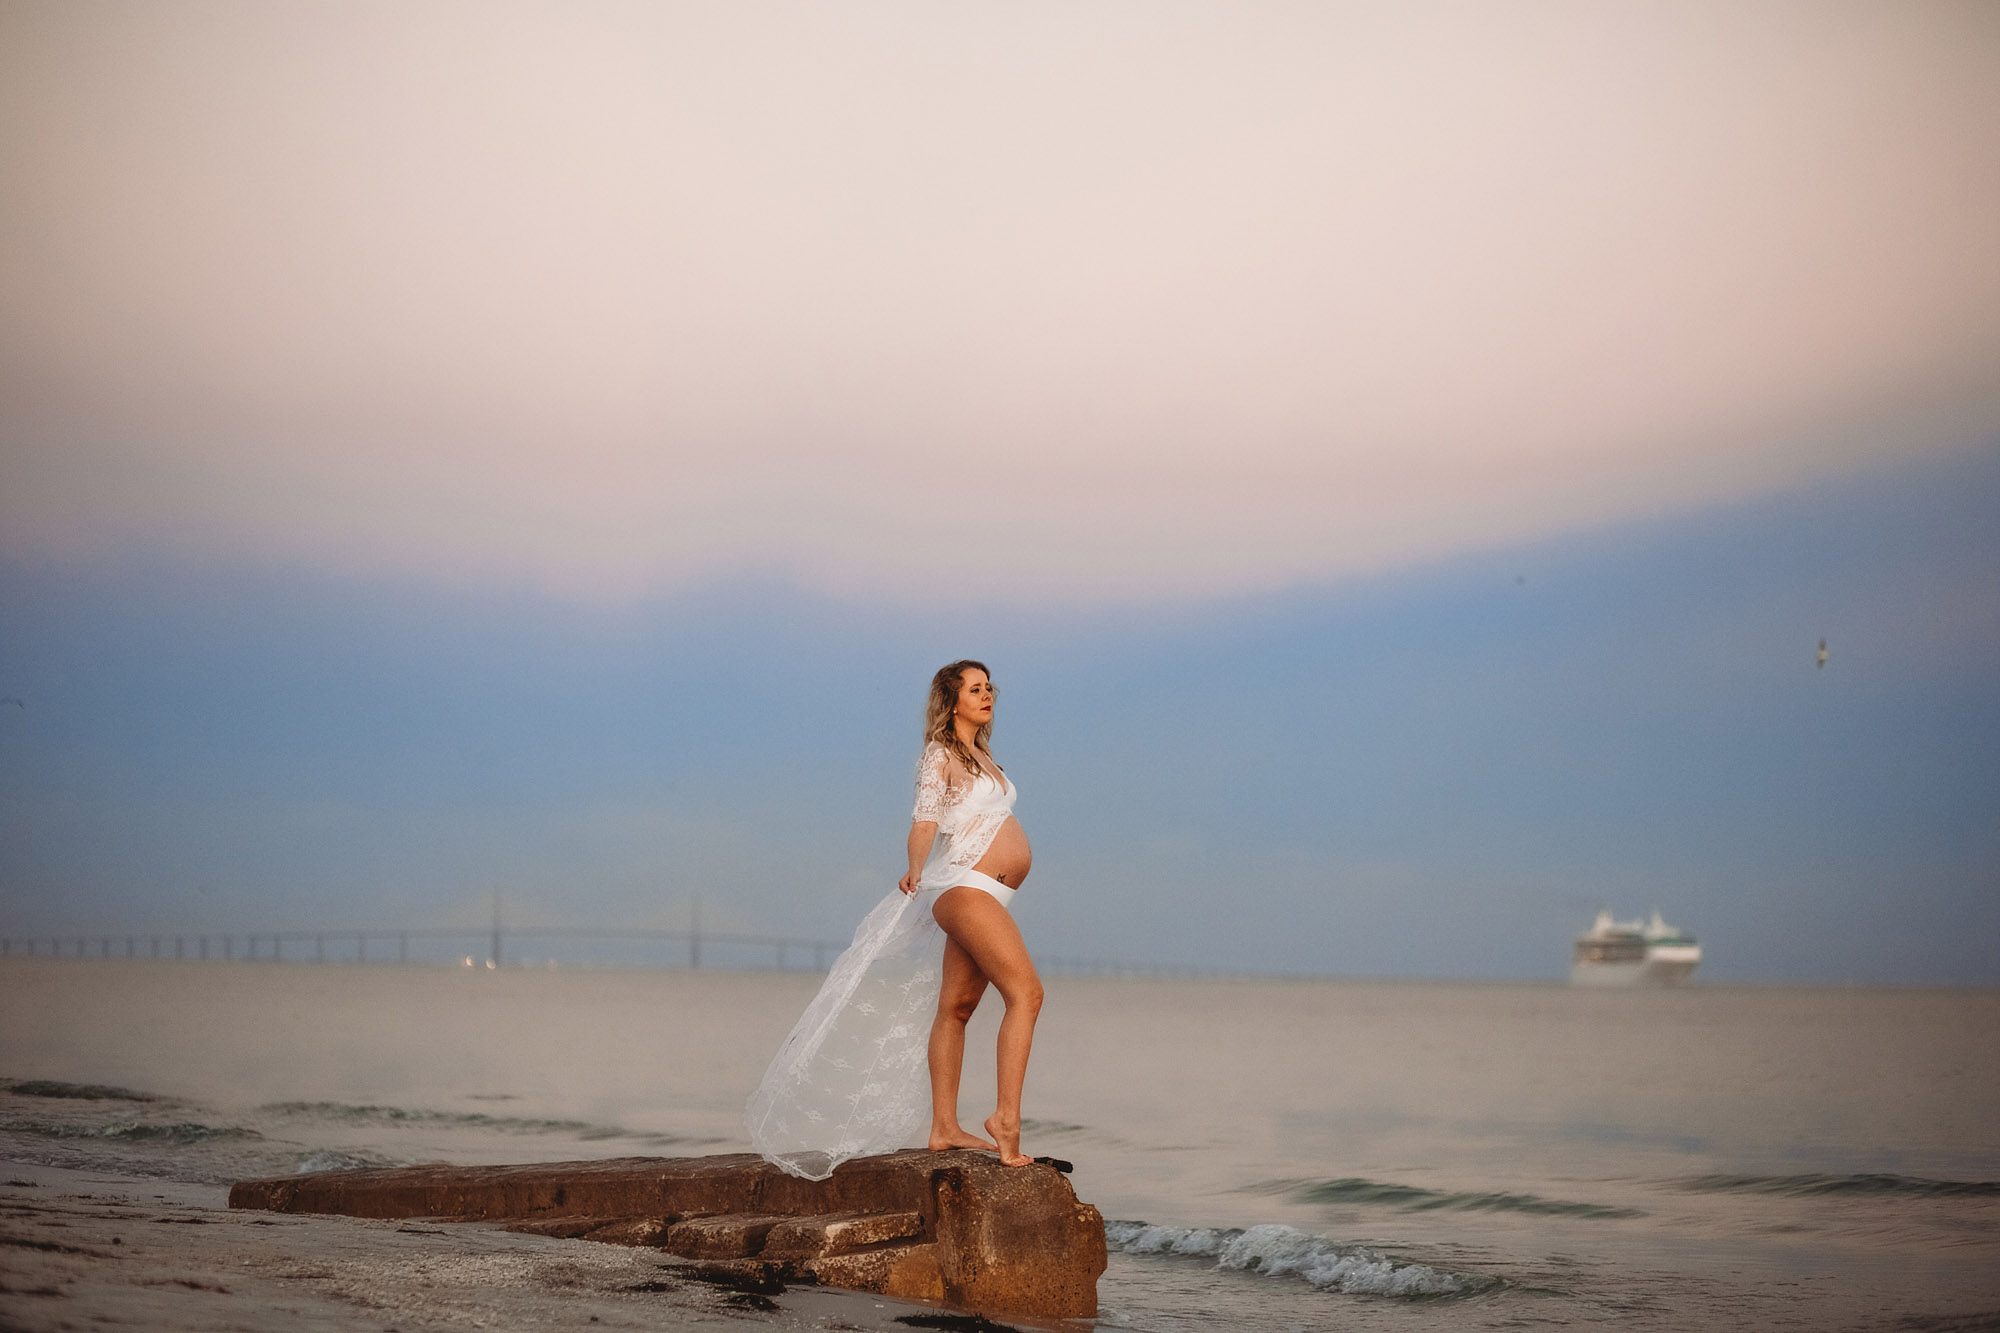 sunset beach maternity pictures, maternity photography at the beach